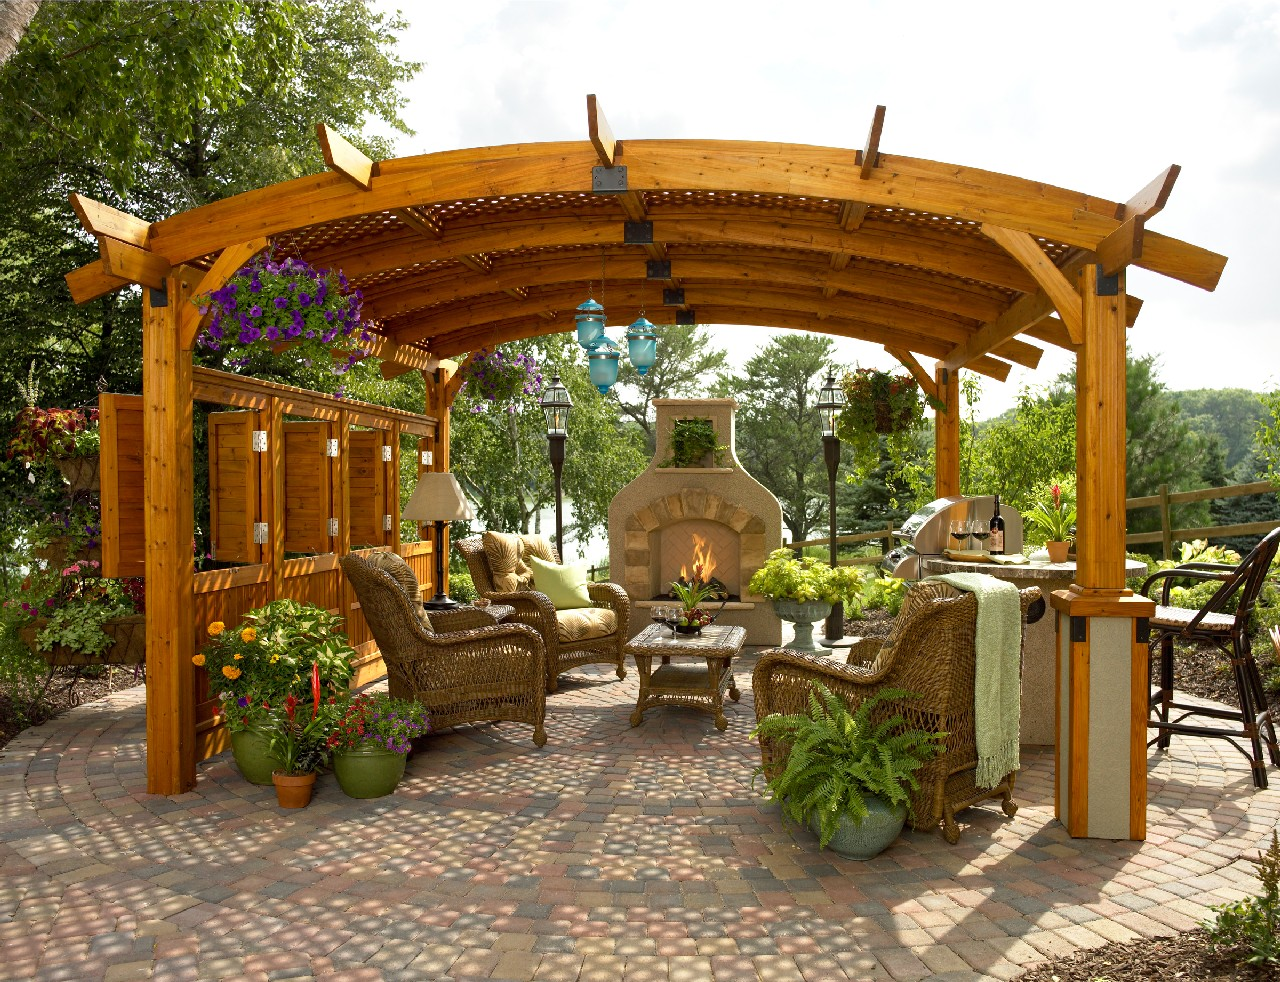 Stylish Pergola Ideas for Your Home - Pool Quest on Covered Pergola Ideas  id=56848